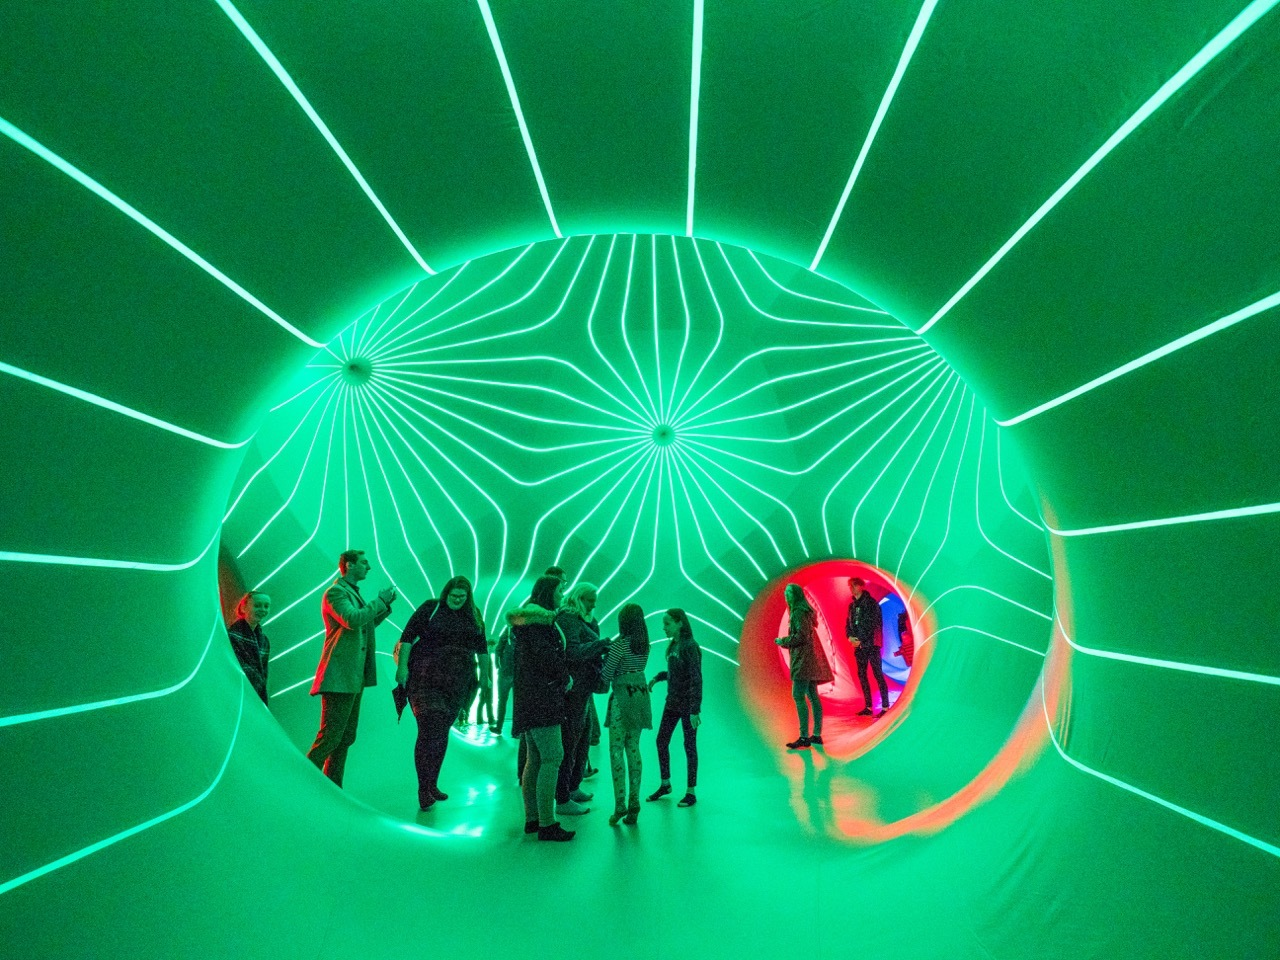 Dodecalis Luminarium Sydney Festival supplied 2020